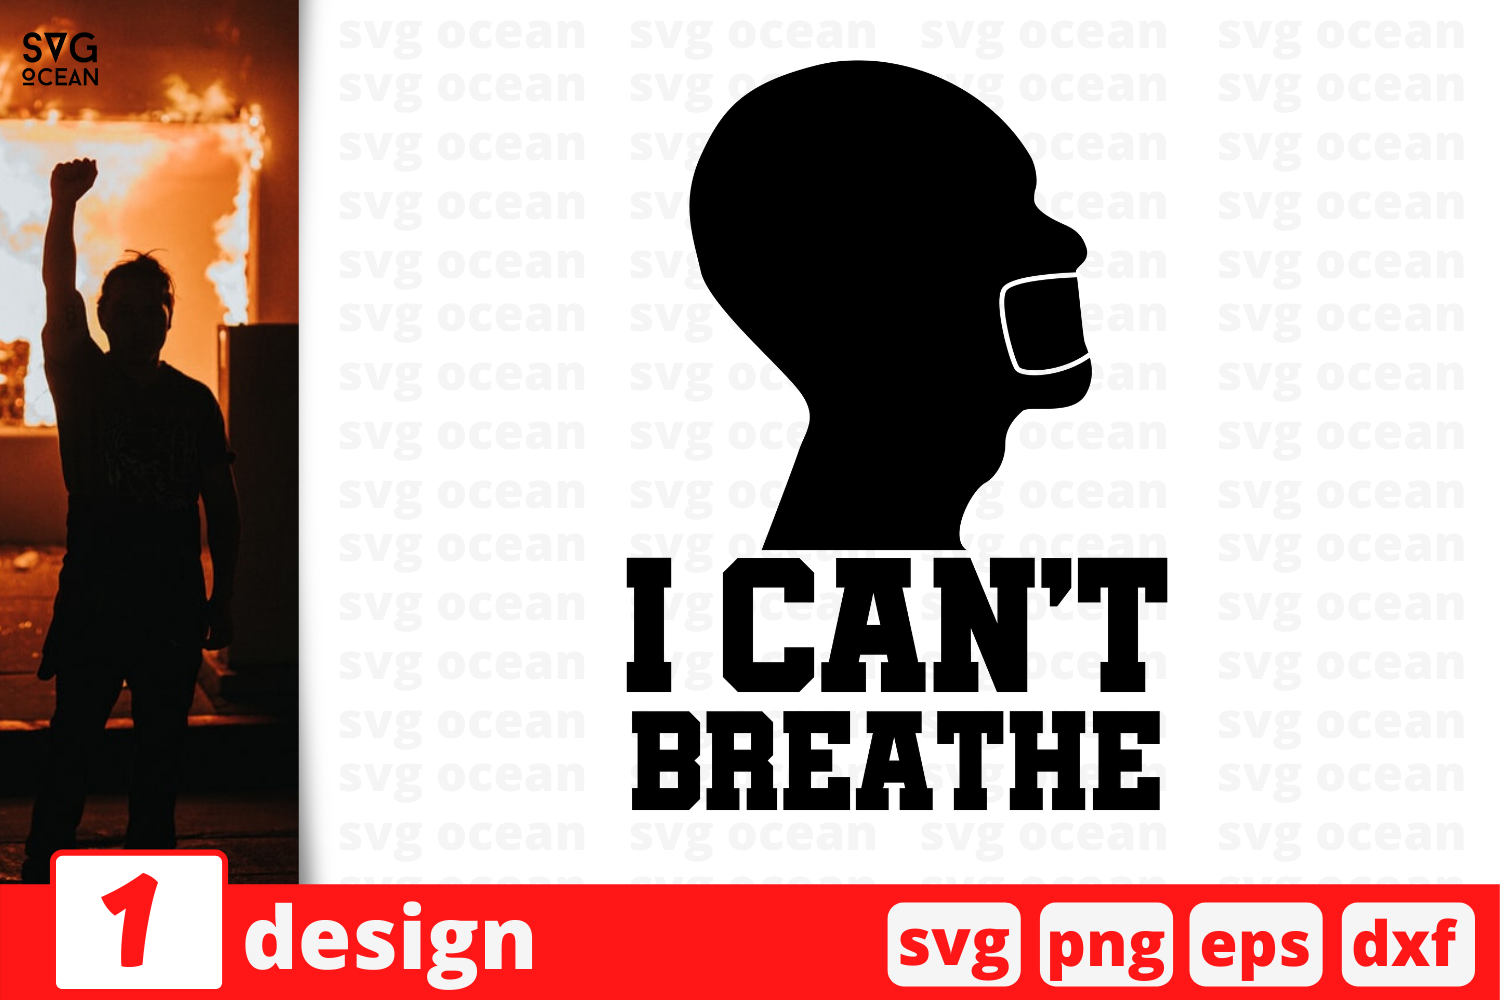 Download Free I Can T Breathe Graphic By Svgocean Creative Fabrica for Cricut Explore, Silhouette and other cutting machines.